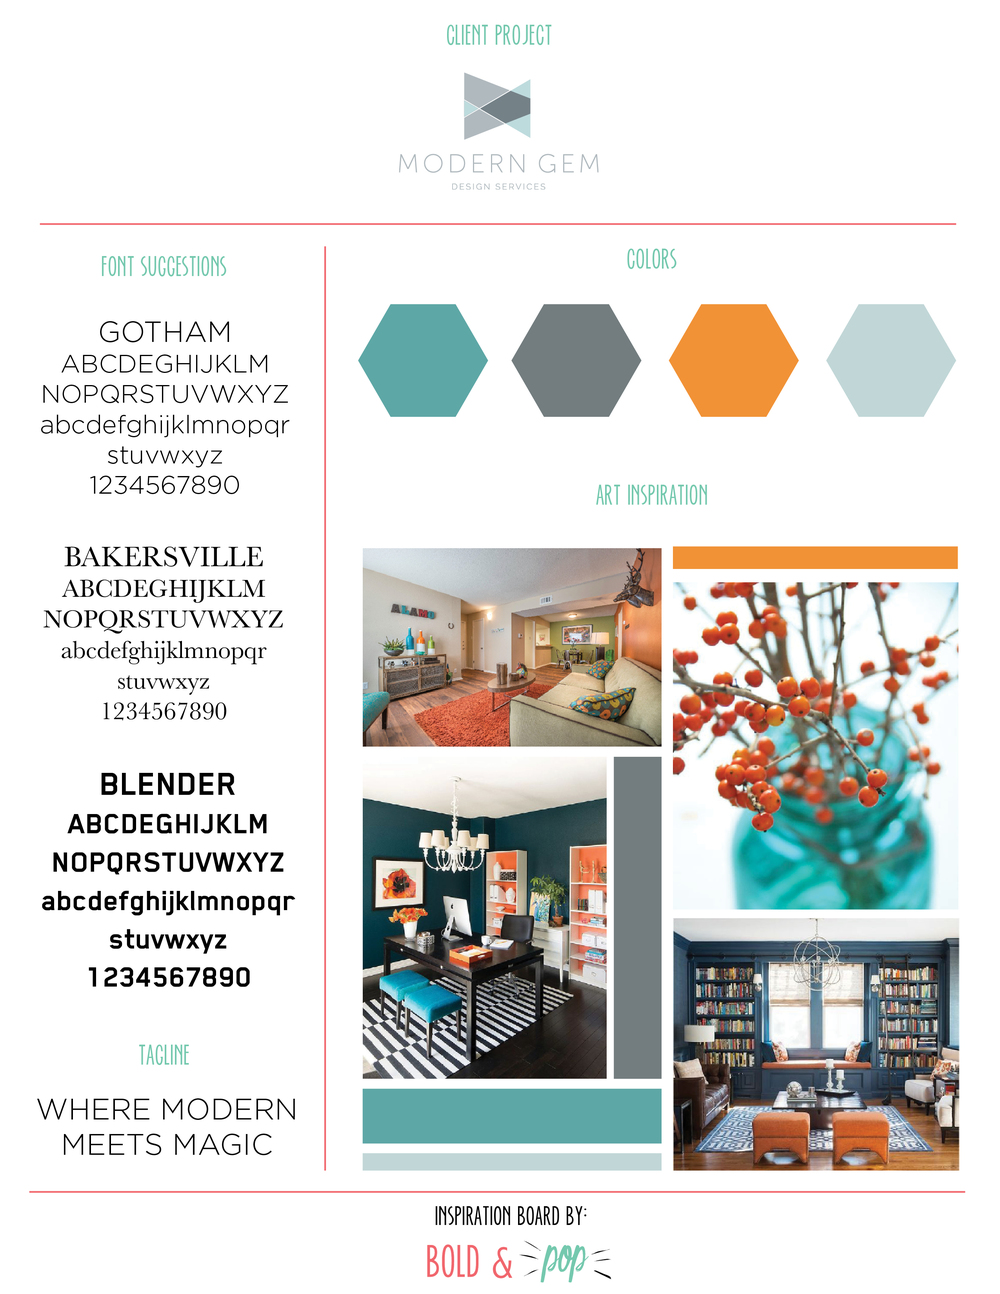 Bold & Pop : Modern Gem Design Website Design